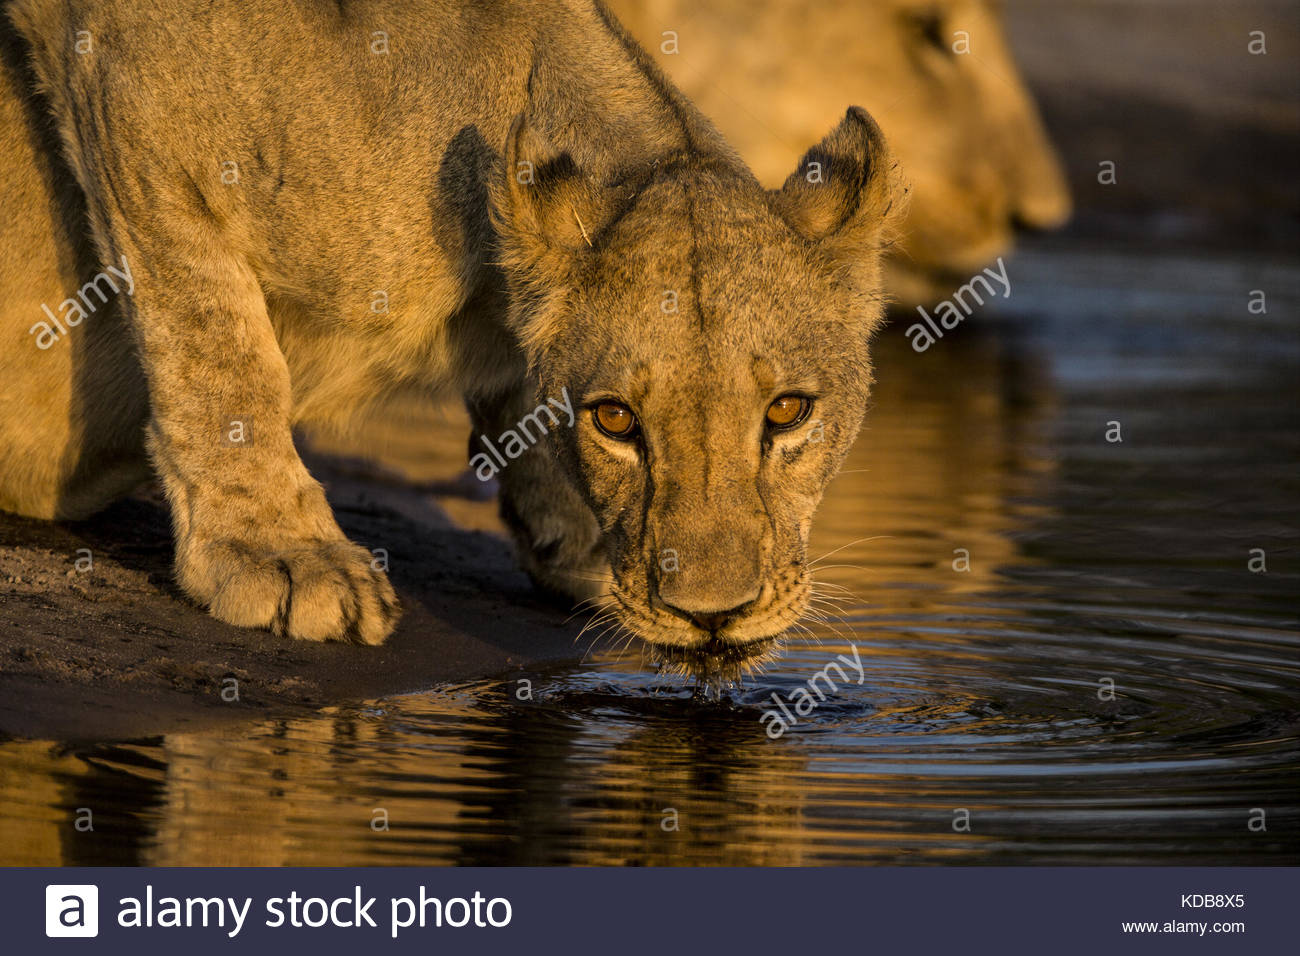 A lioness, Panthera leo, drinking from a spillway at sunset. - Stock Image